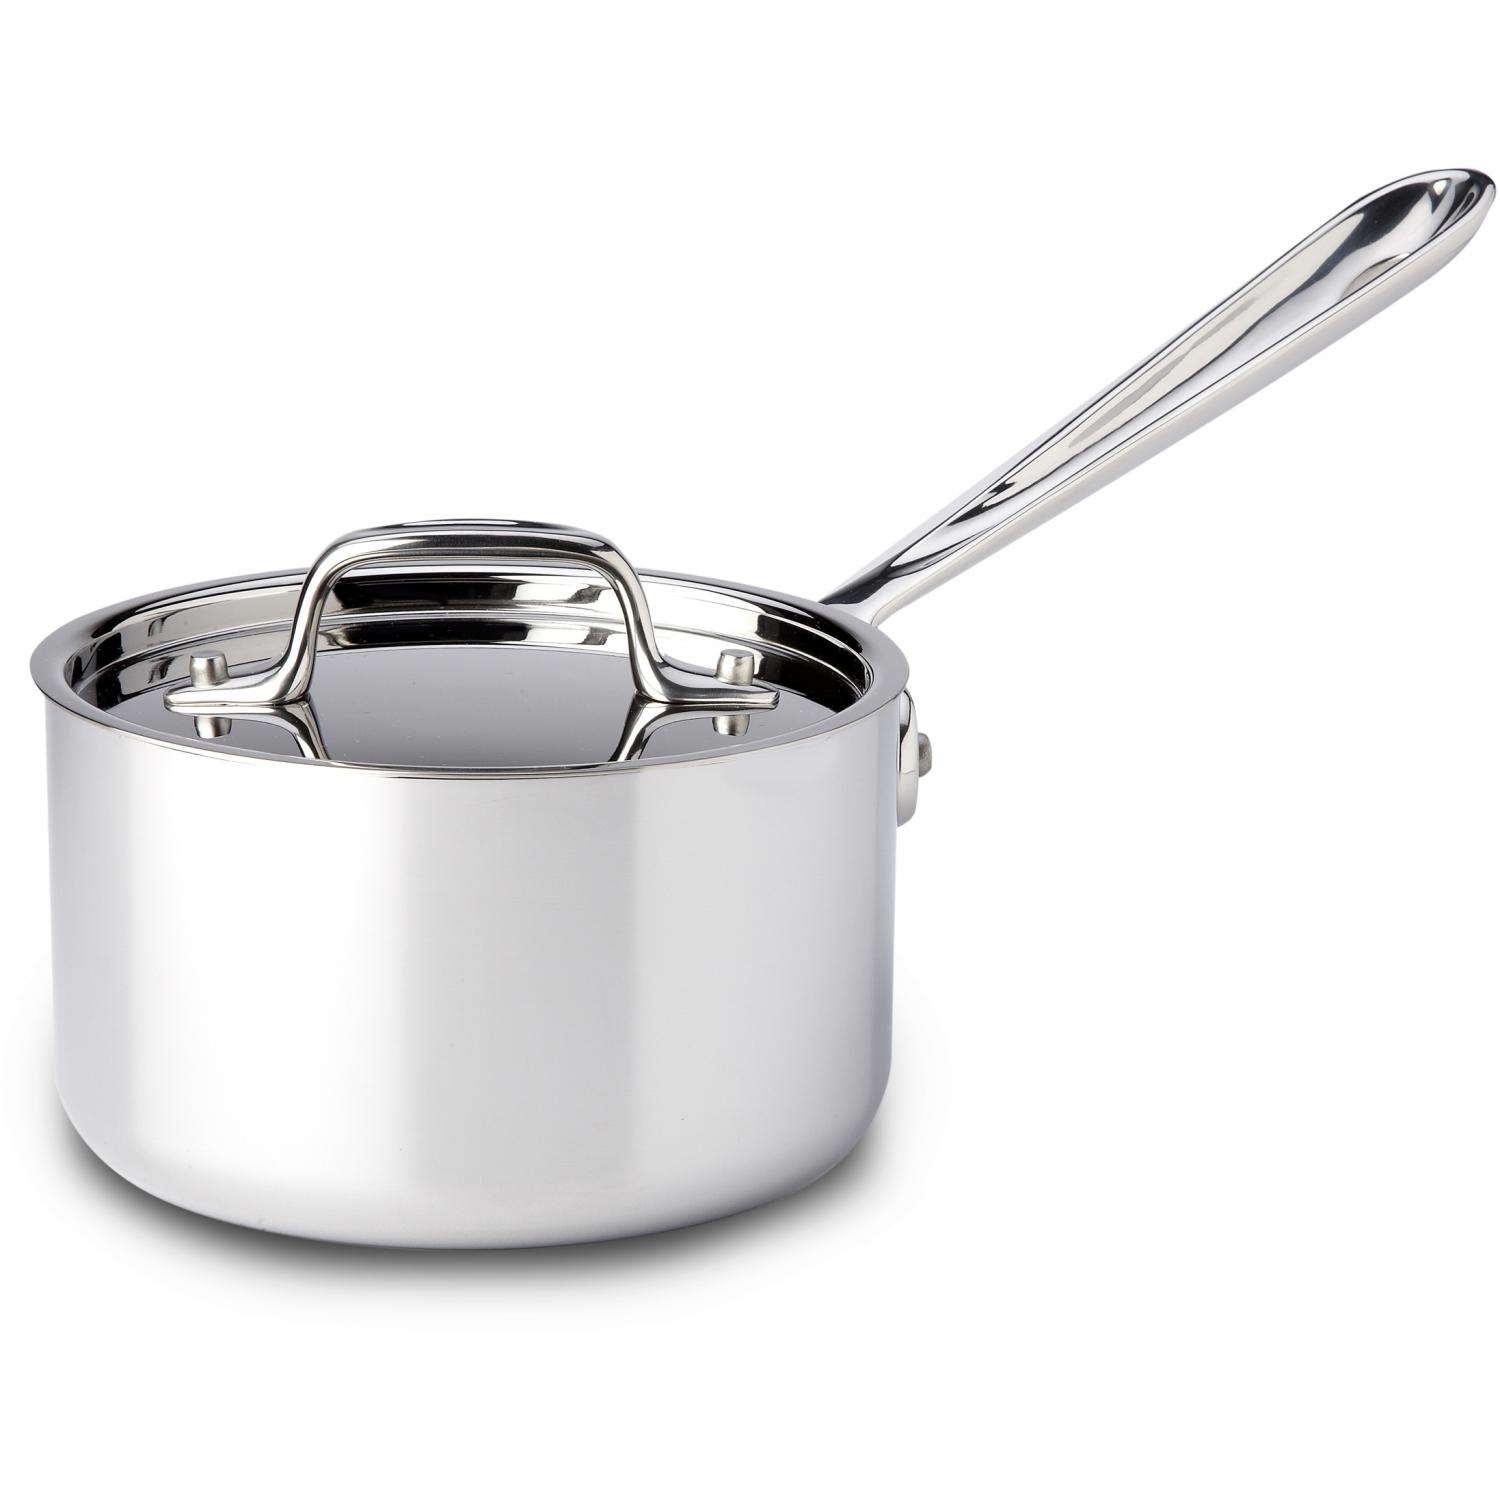 All-Clad Stainless 1.5-Quart Sauce Pan With Lid